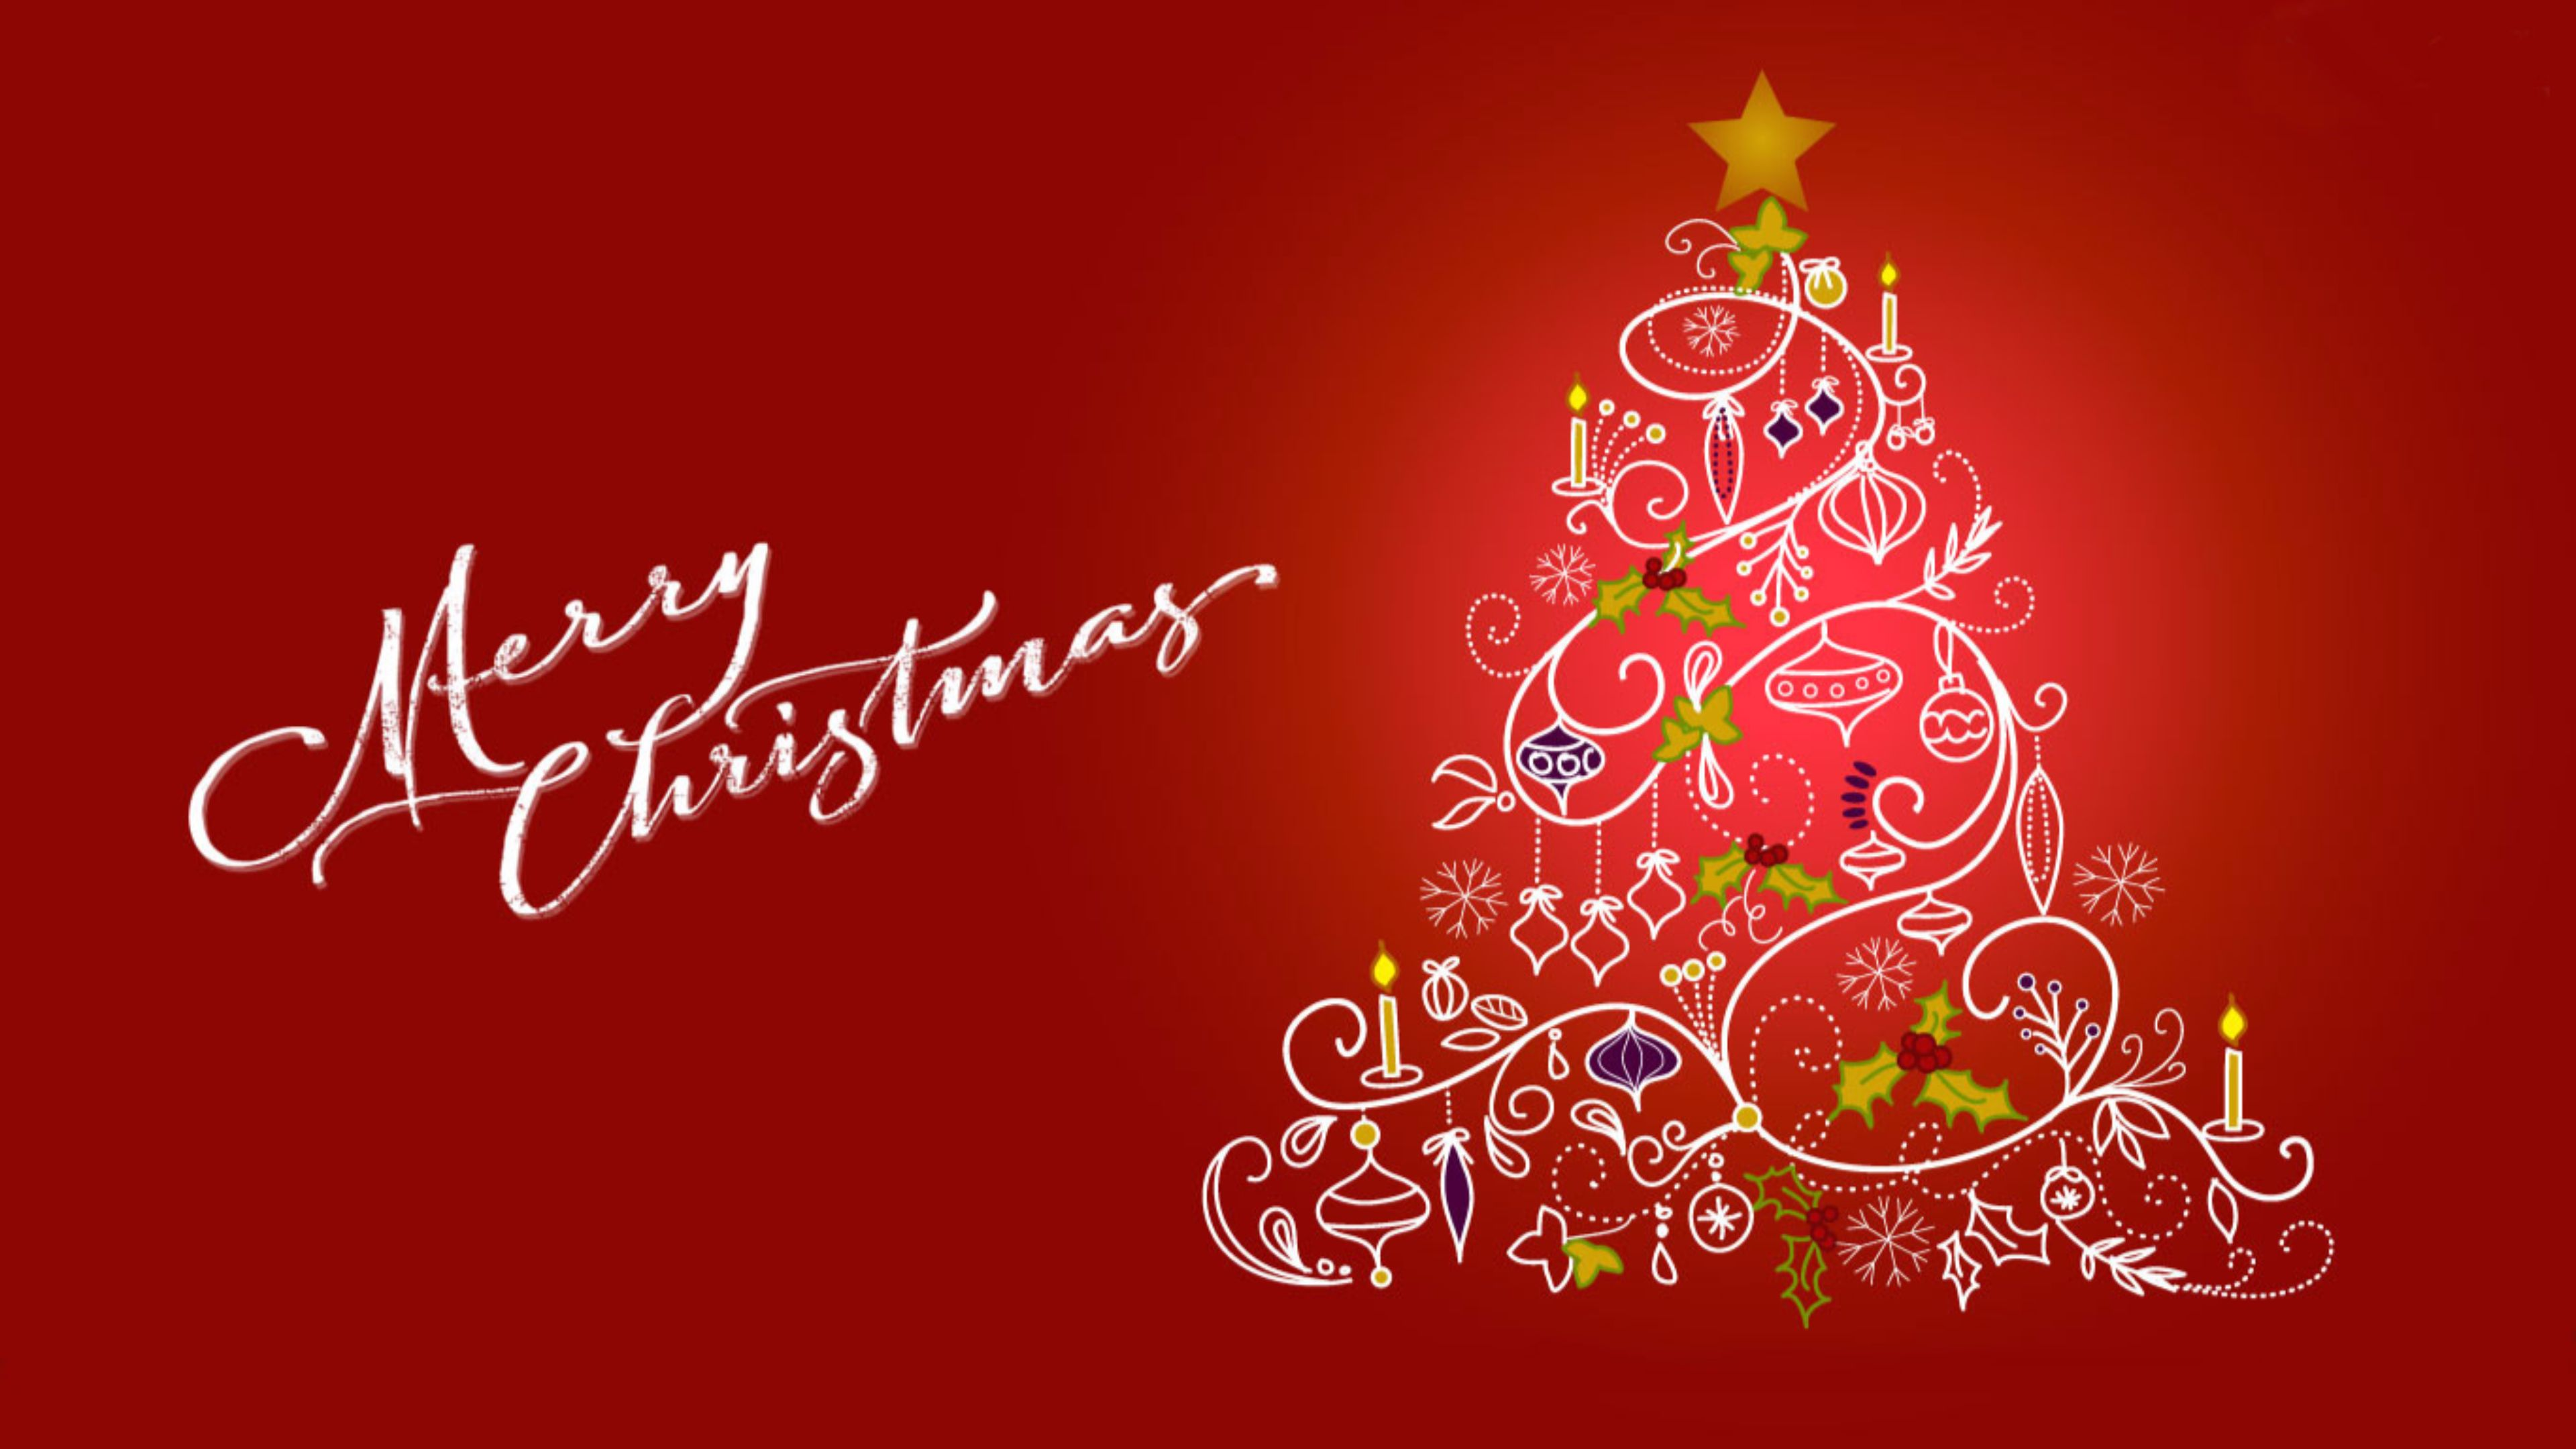 Happy merry christmas greetings hd ultra 4k wallpaper kristyandbryce Image collections